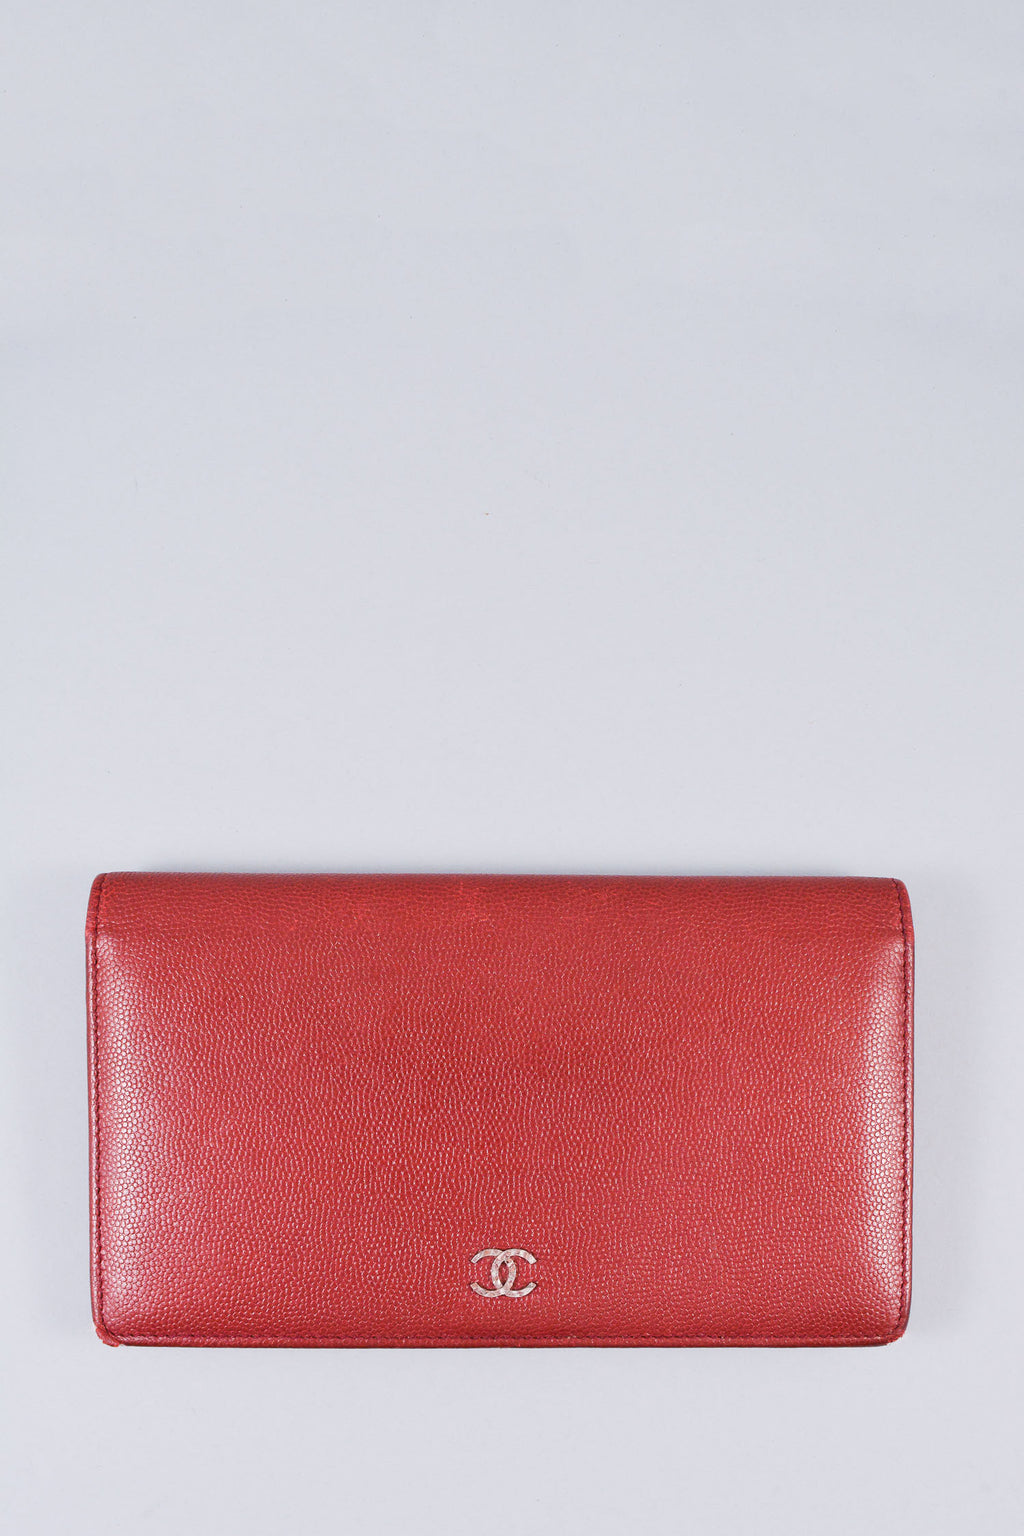 Chanel Brick Red Bifold Wallet